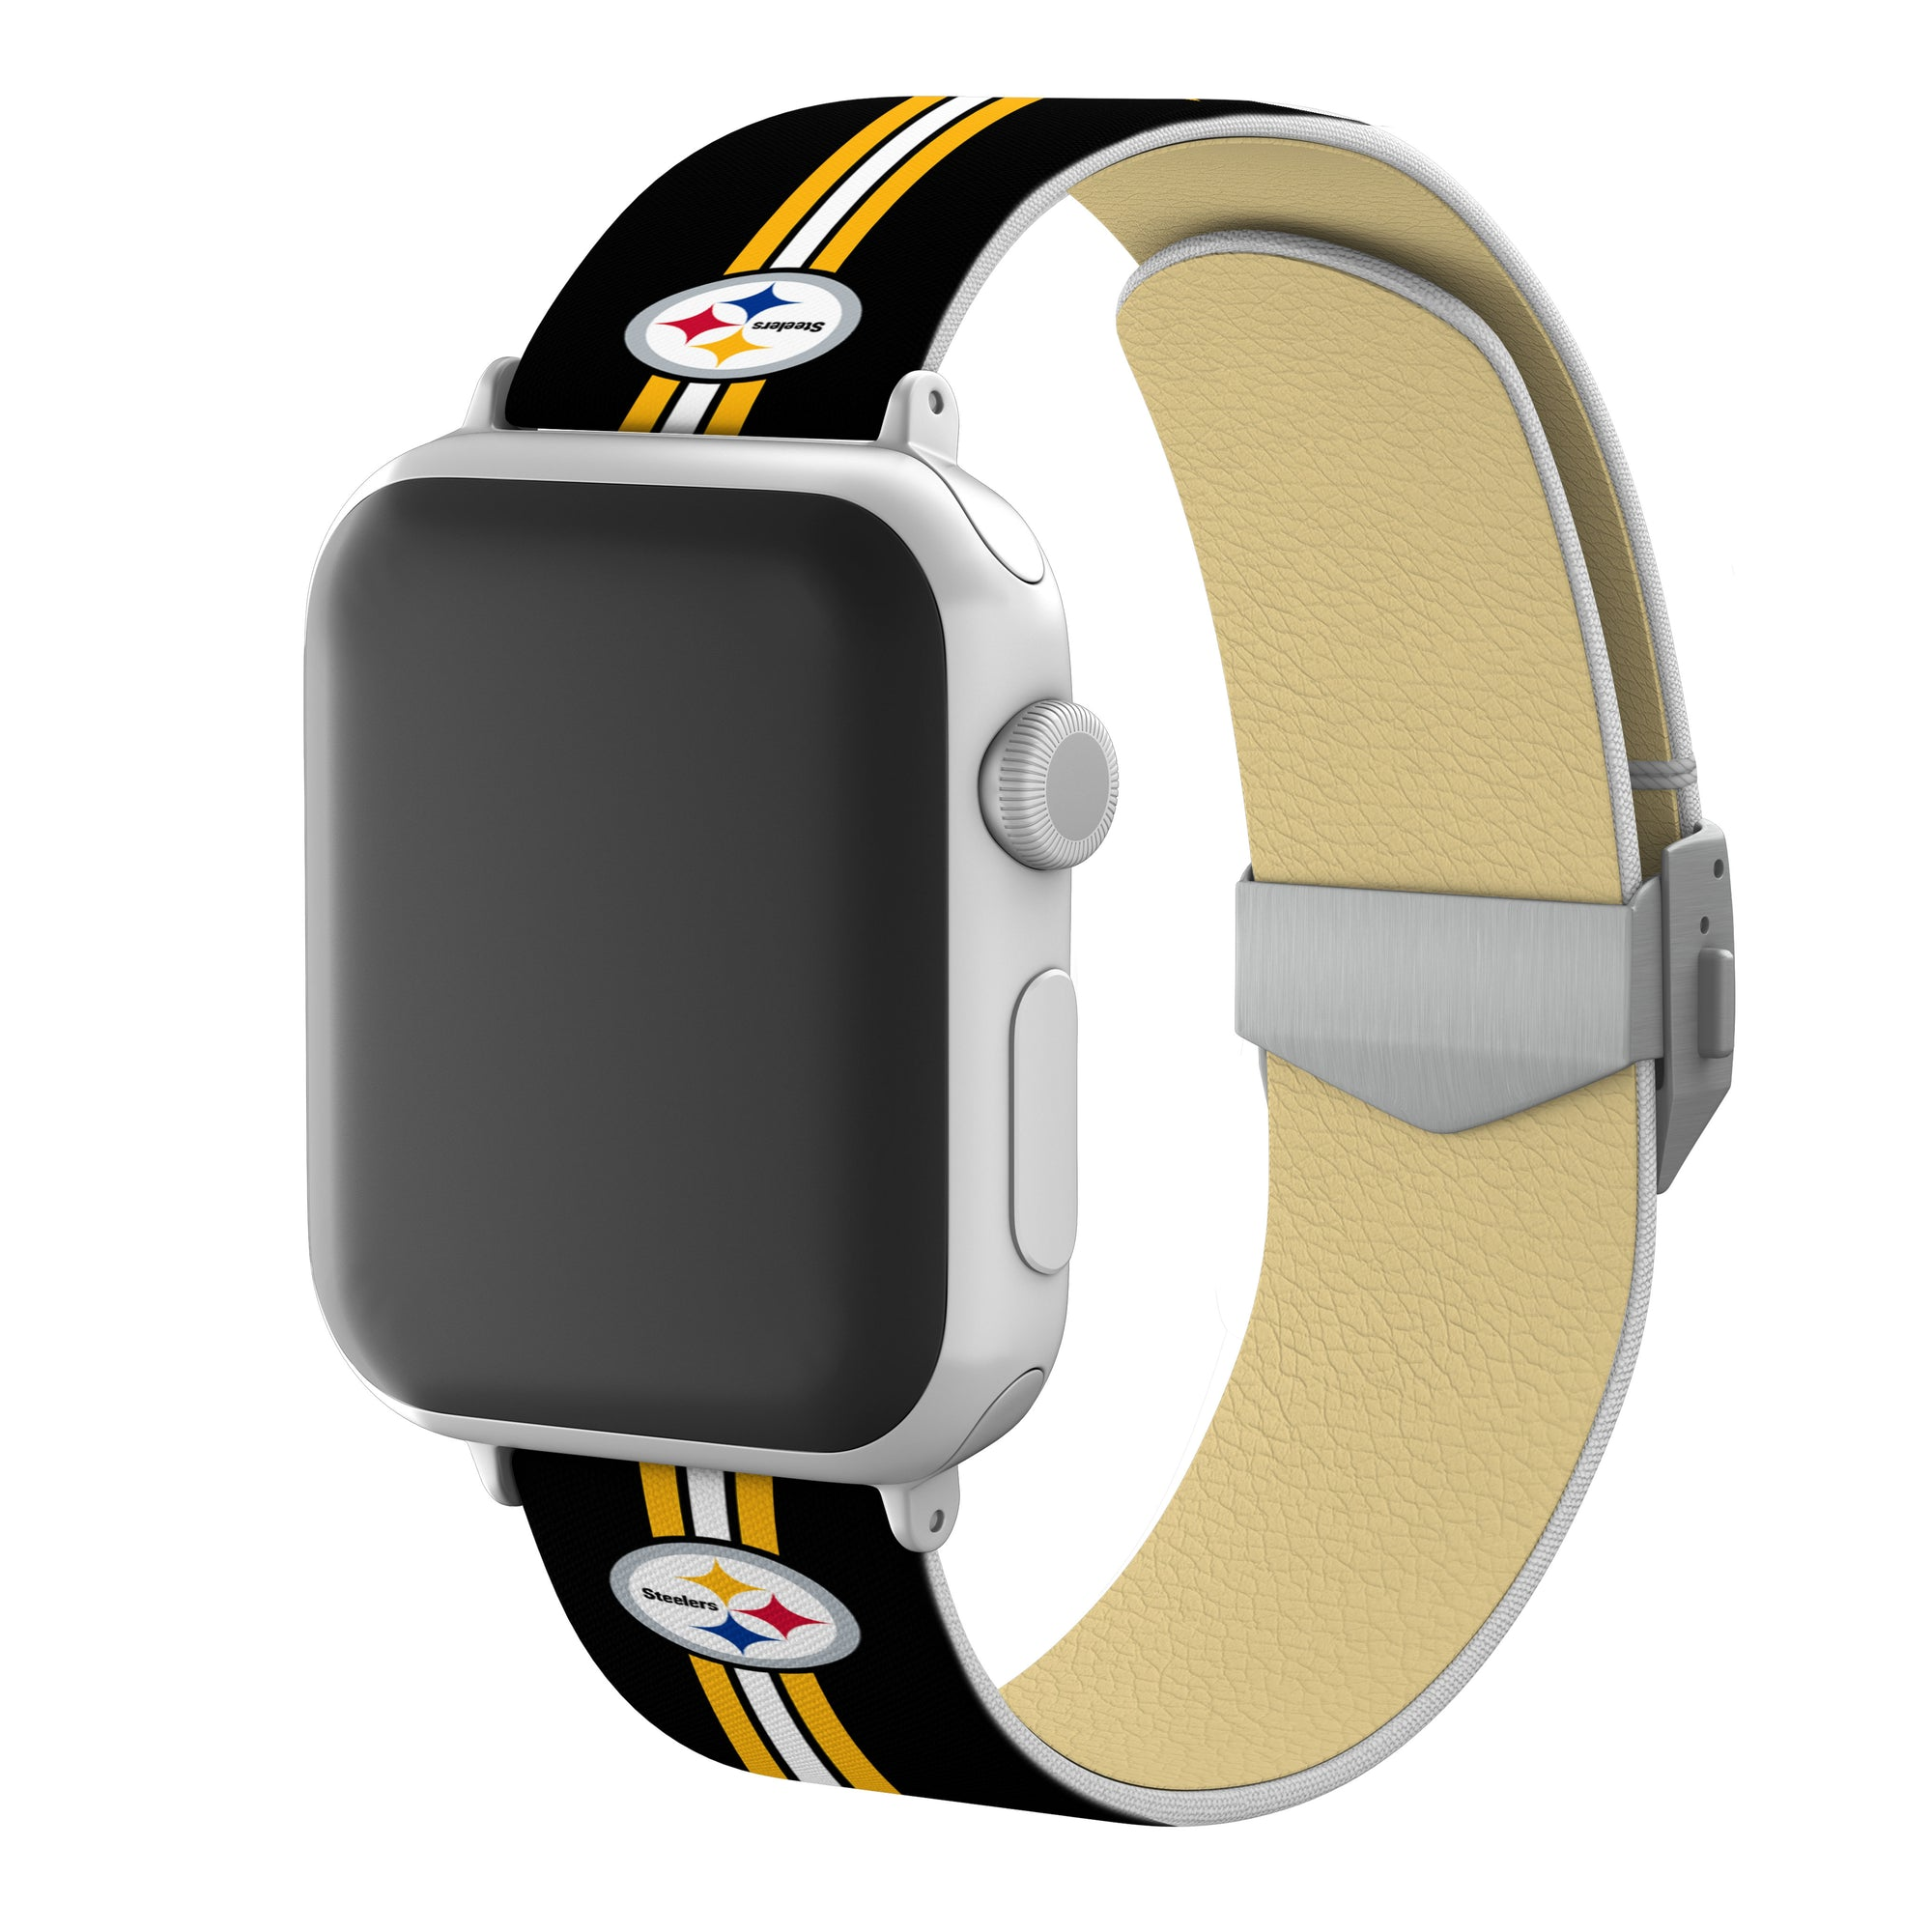 Pittsburgh Steelers Full Print Watch Band With Engraved Buckle - AffinityBands